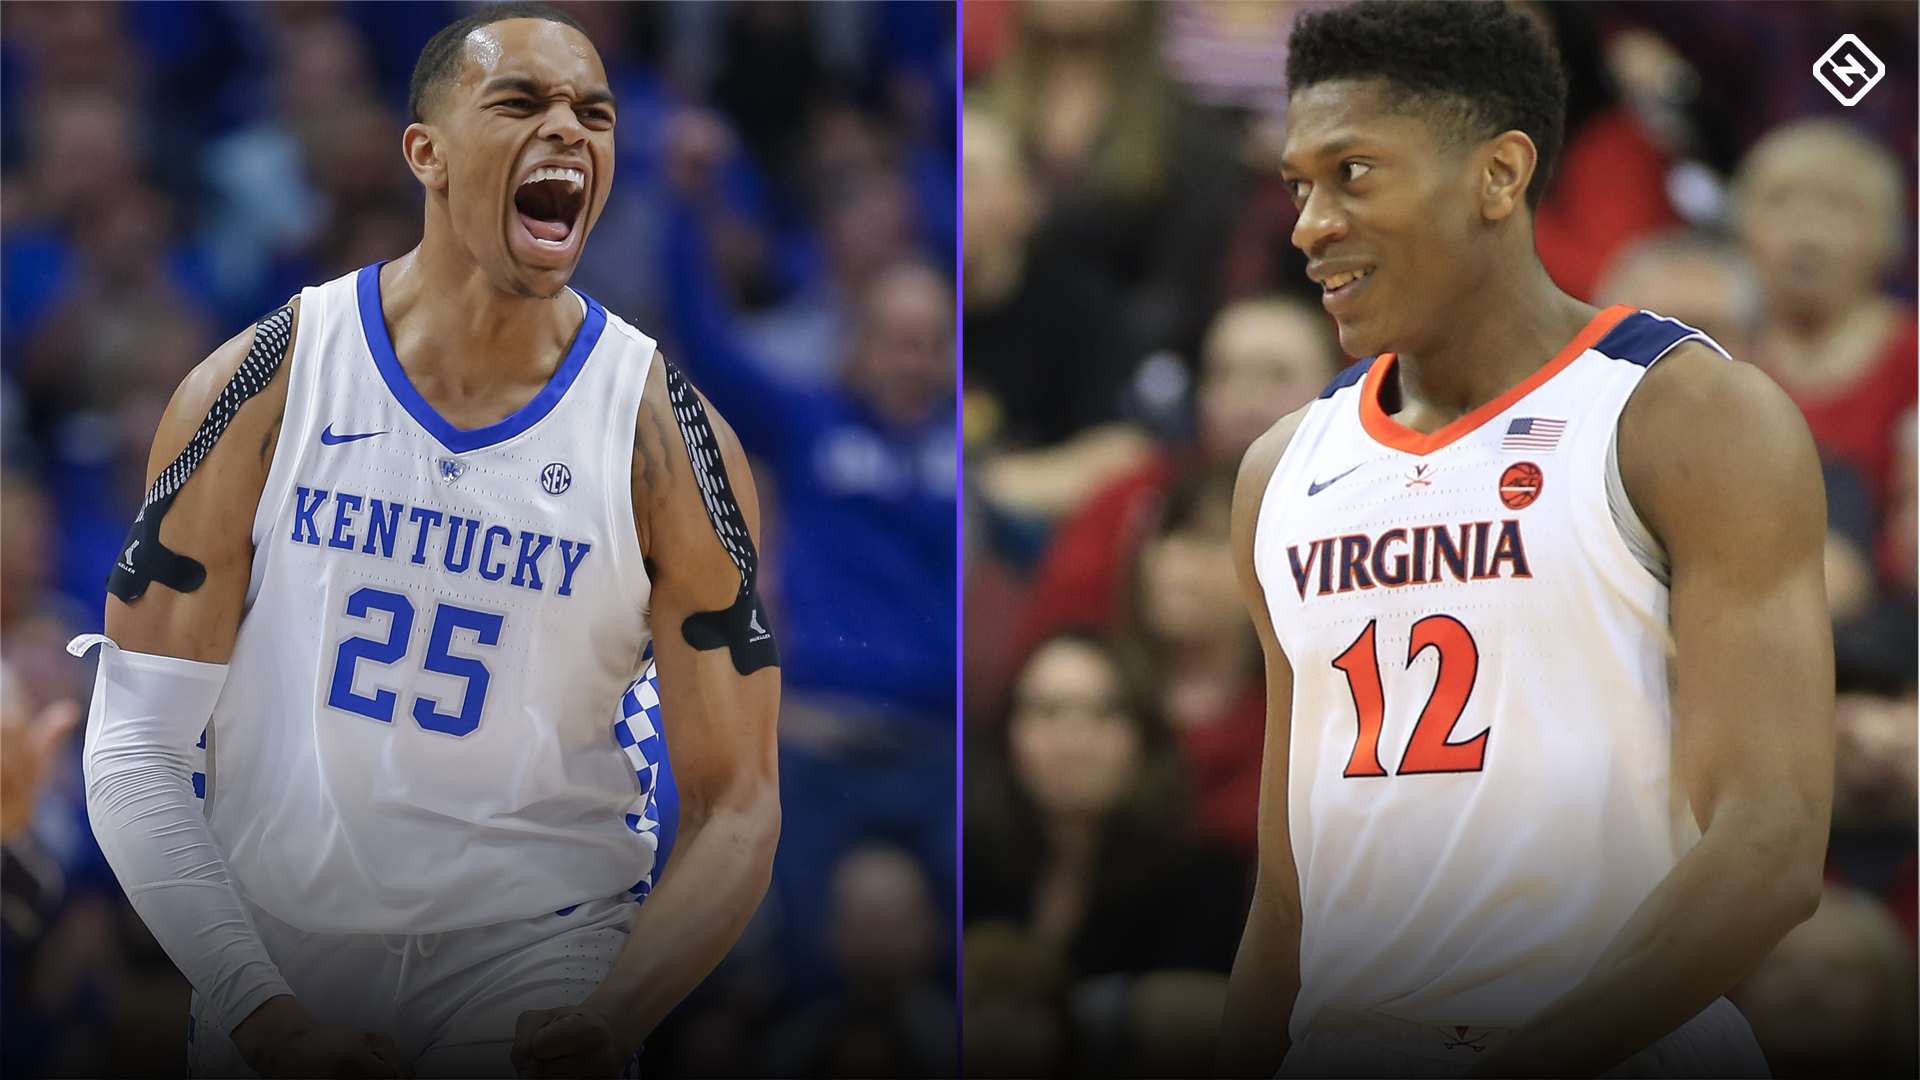 March Madness 2019: Perfect Your Bracket Picks With